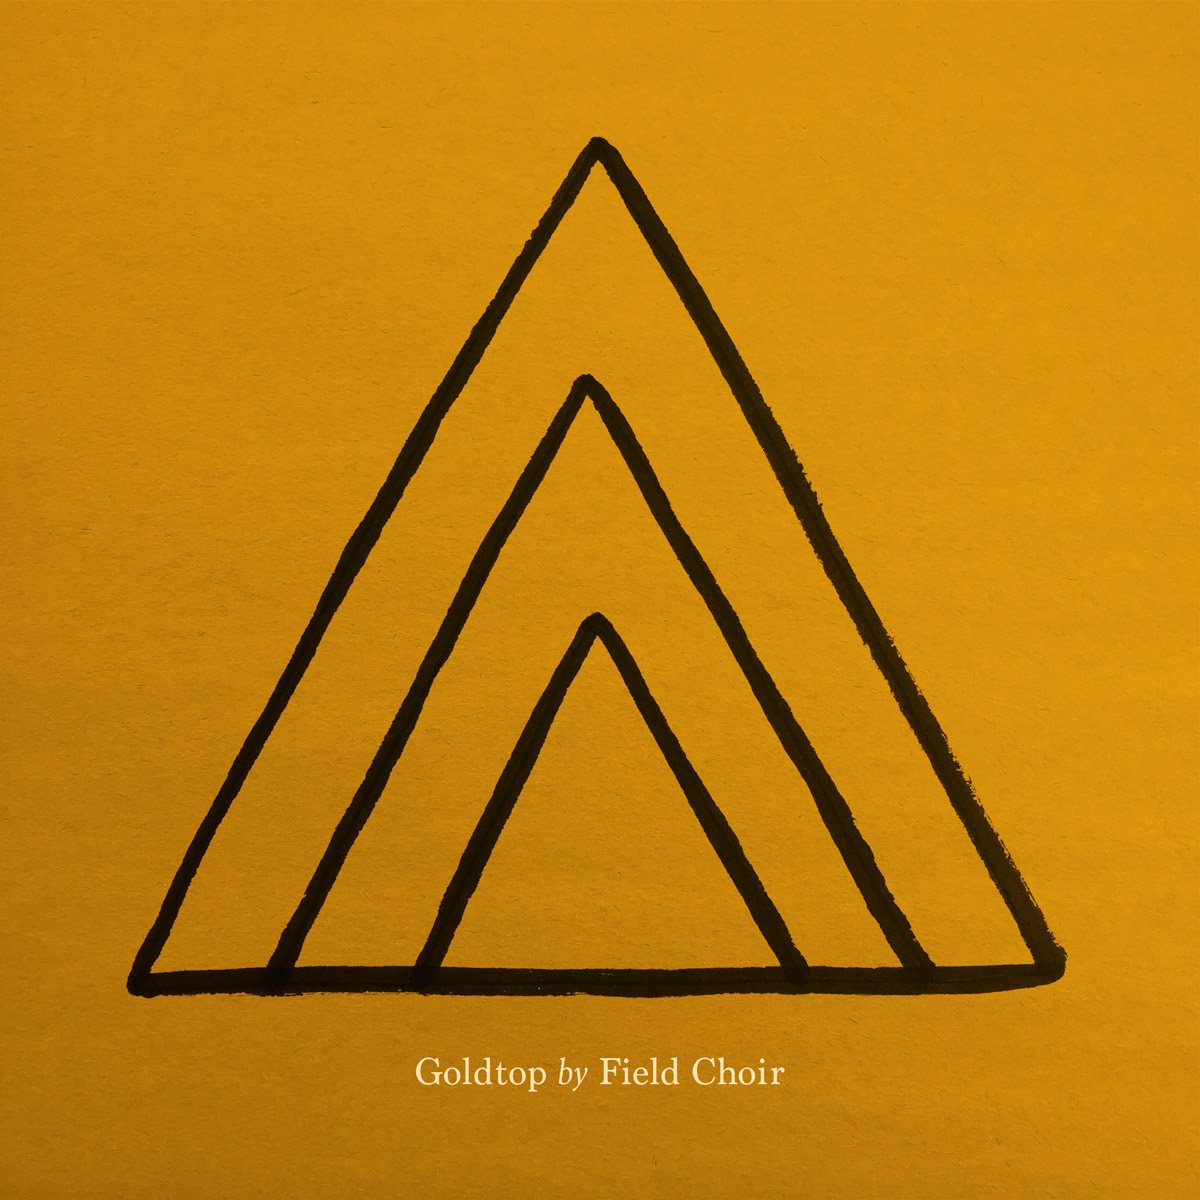 Field-Choir-Goldtop-CDR.jpg